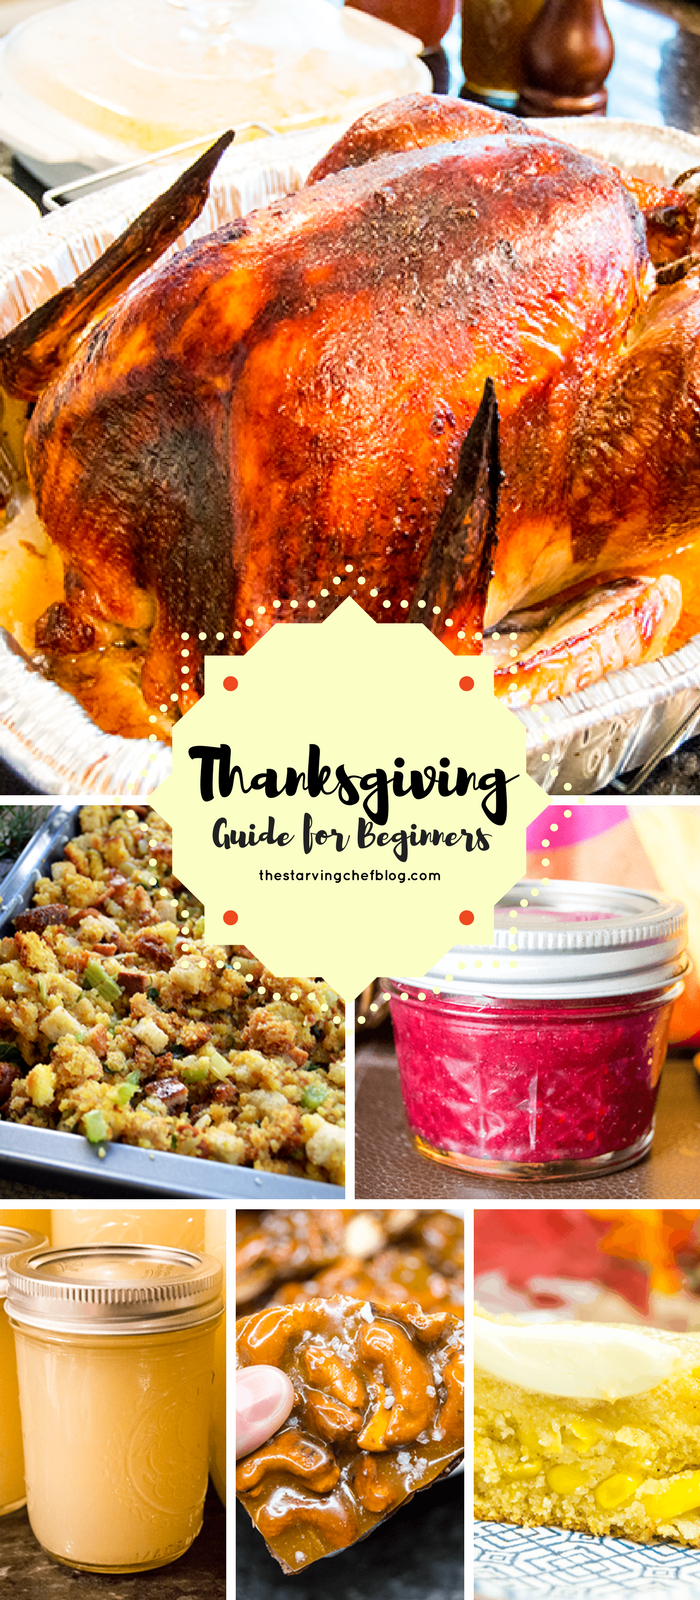 The Starving Chef's Thanksgiving Guide